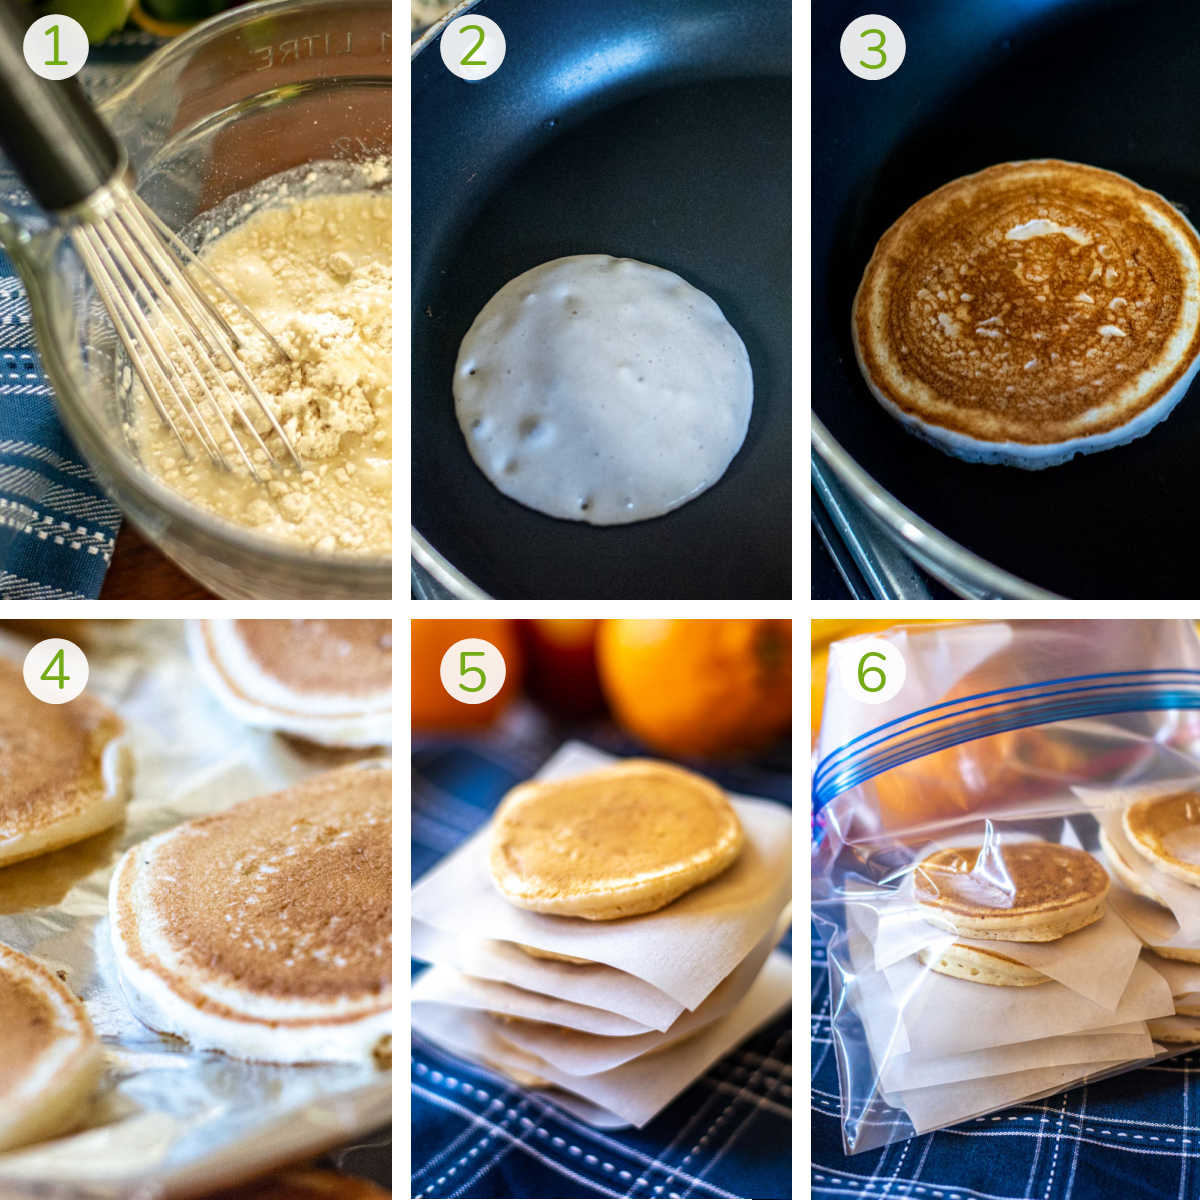 several process shots showing mixing the batter, cooking the pancakes and then prepping for the freezer bag.